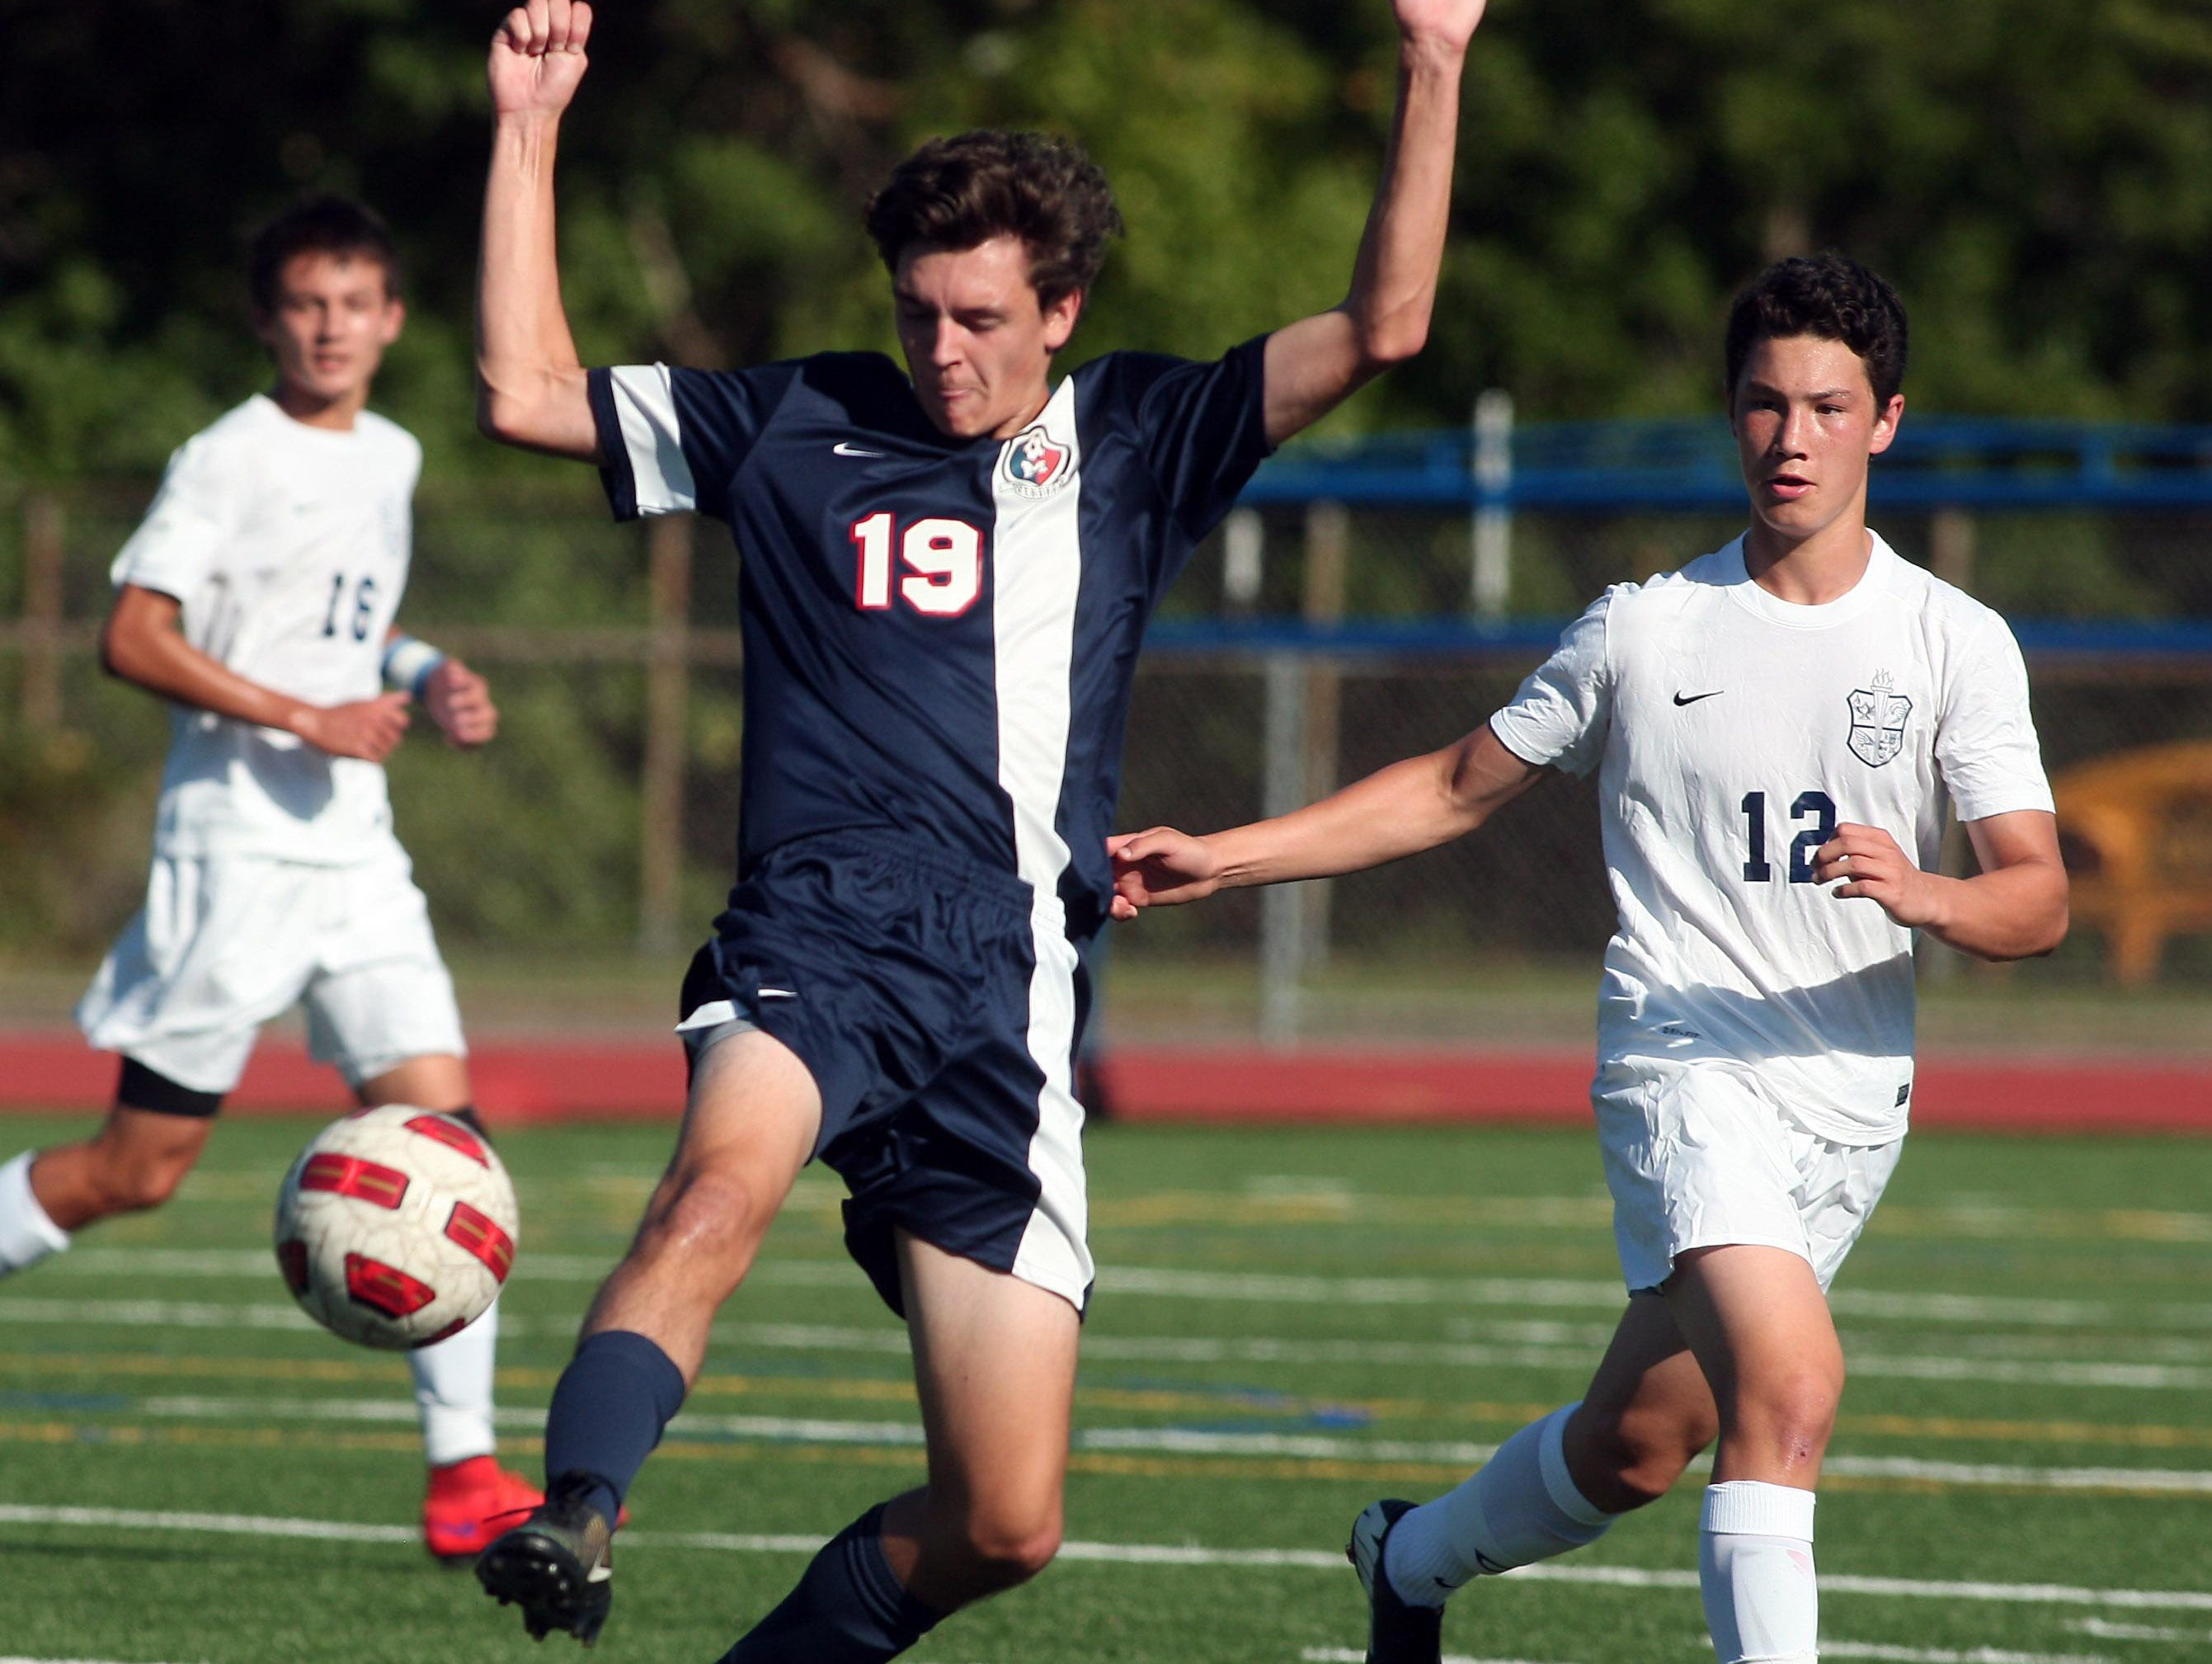 Mendham's Thomas Nobes controls the ball in front of Chatham's Harrison Shi in Wednesday's NJAC-United boys soccer matchup.